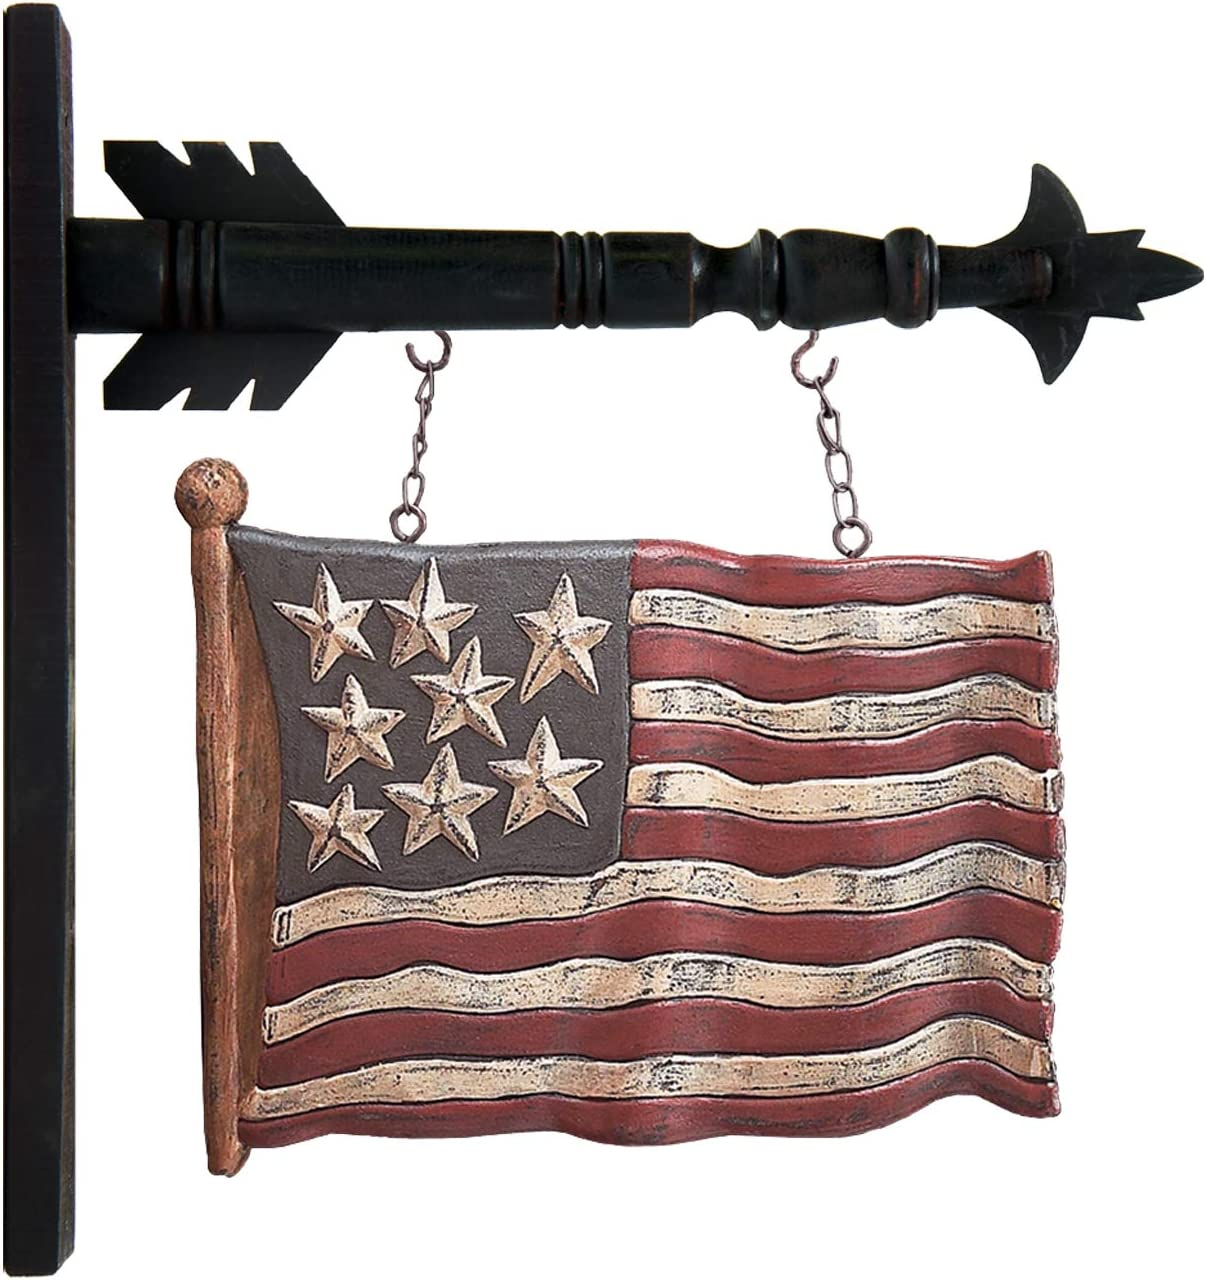 K&K Interiors B5751 Carved Flag Arrow Replacement, 10.00 x 12.50 x 2.00